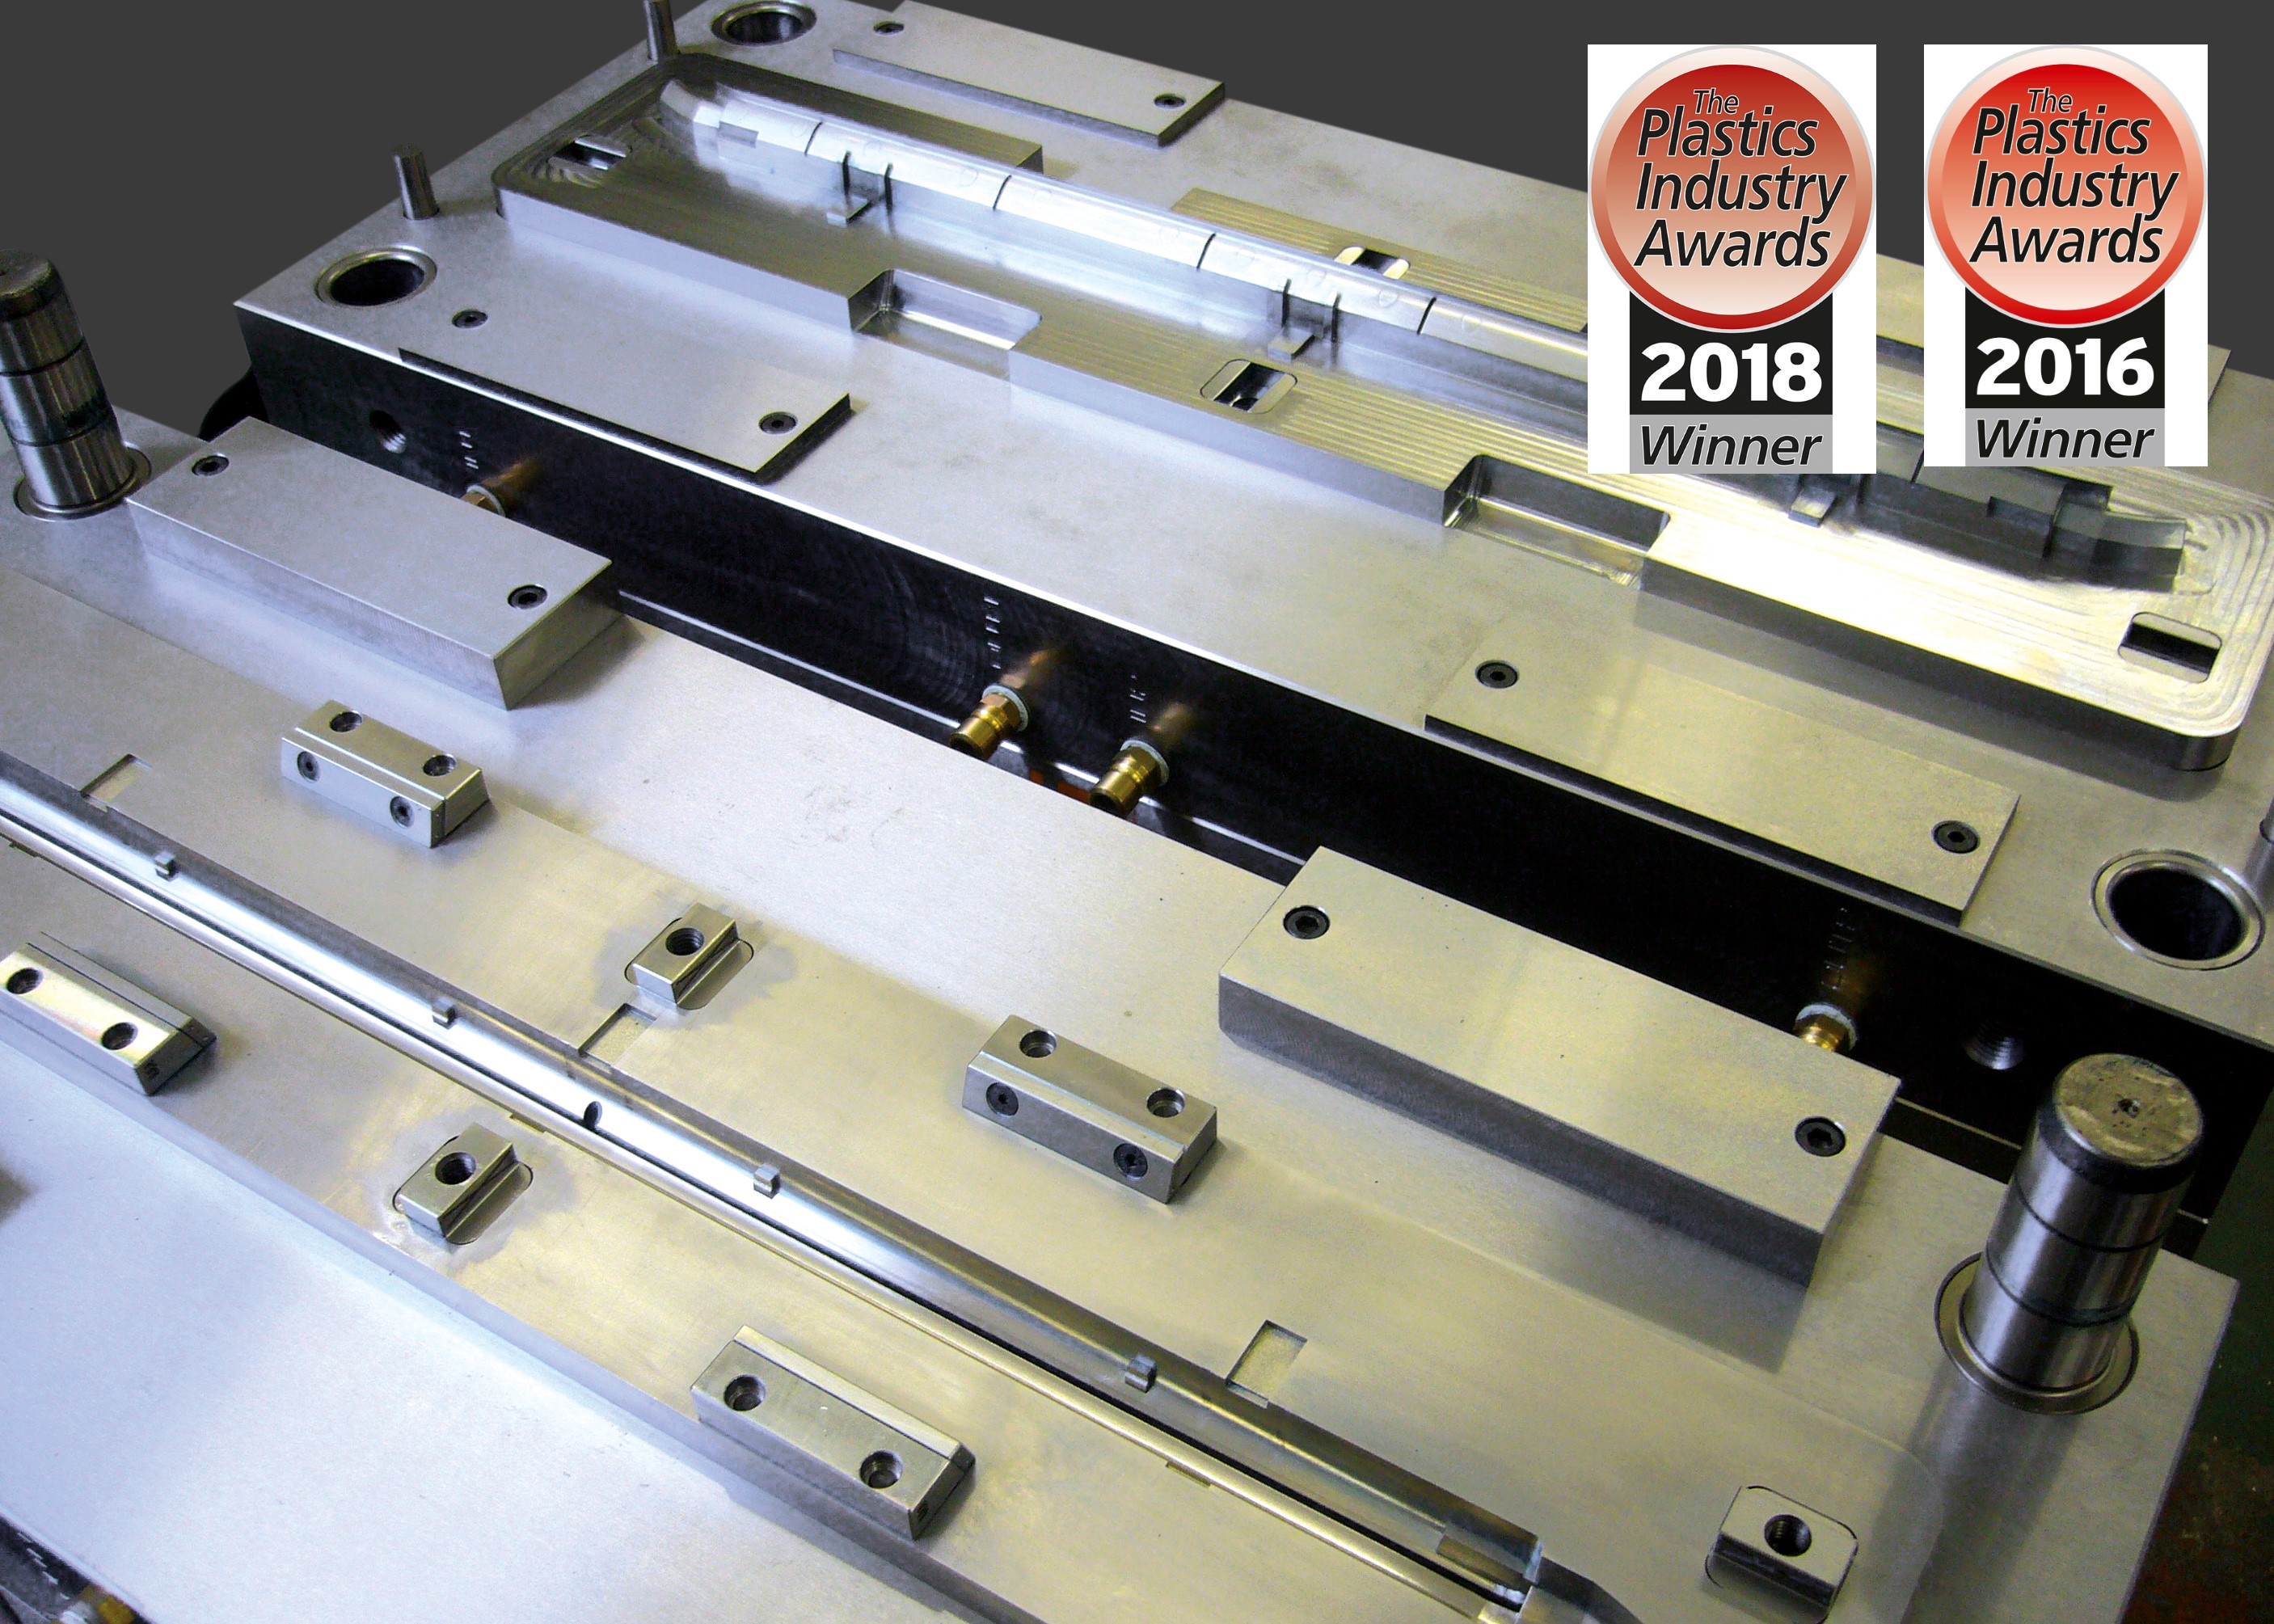 Award-Winning Battery Box and Lighting Suite of Tools